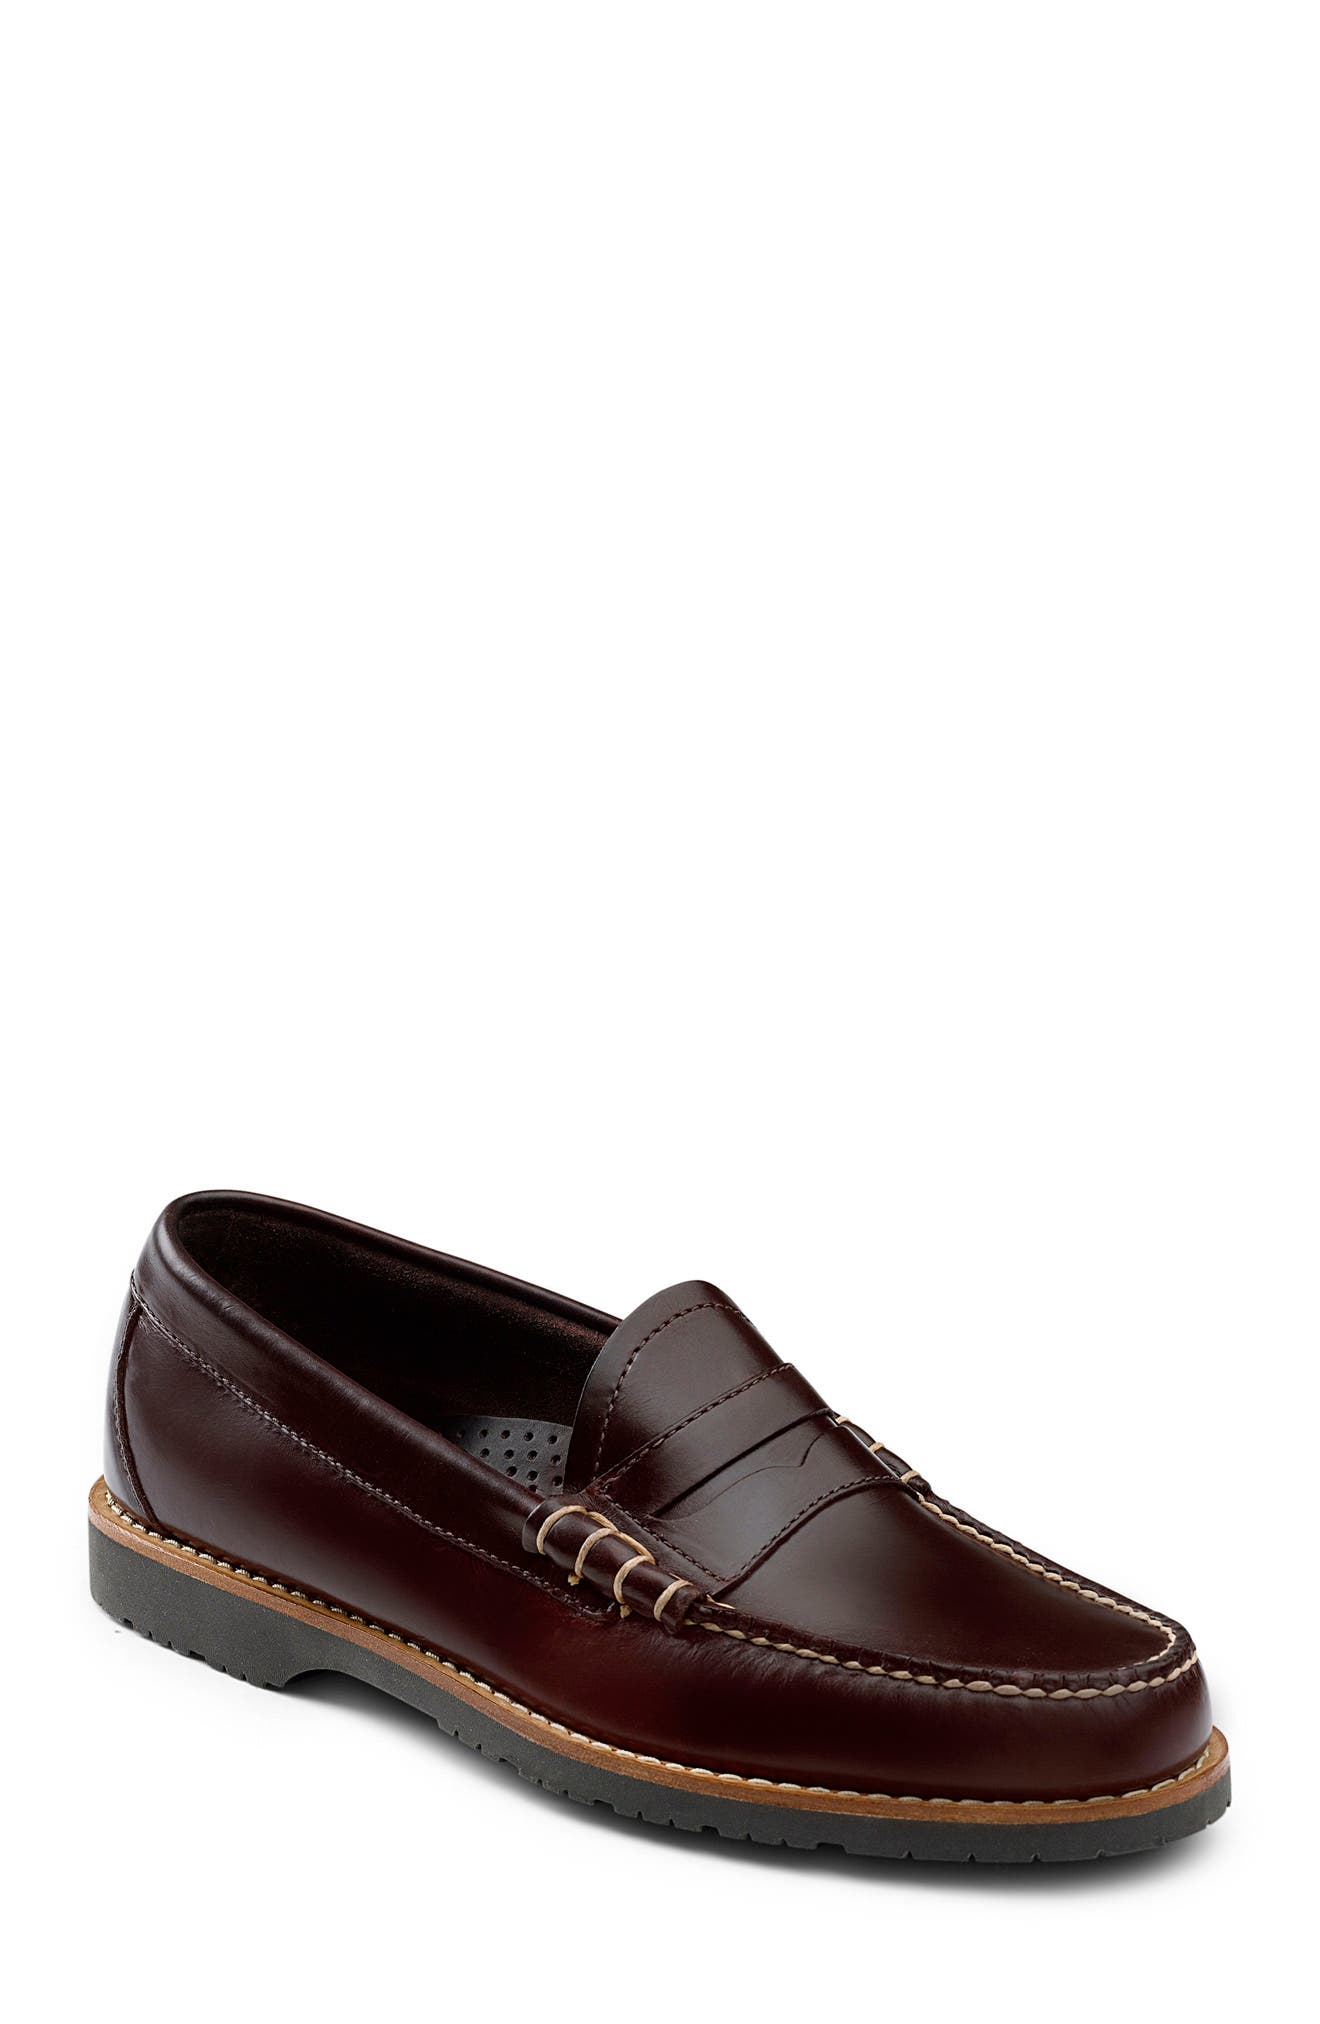 G.H. Bass & Co. Simon Penny Loafer (Men)